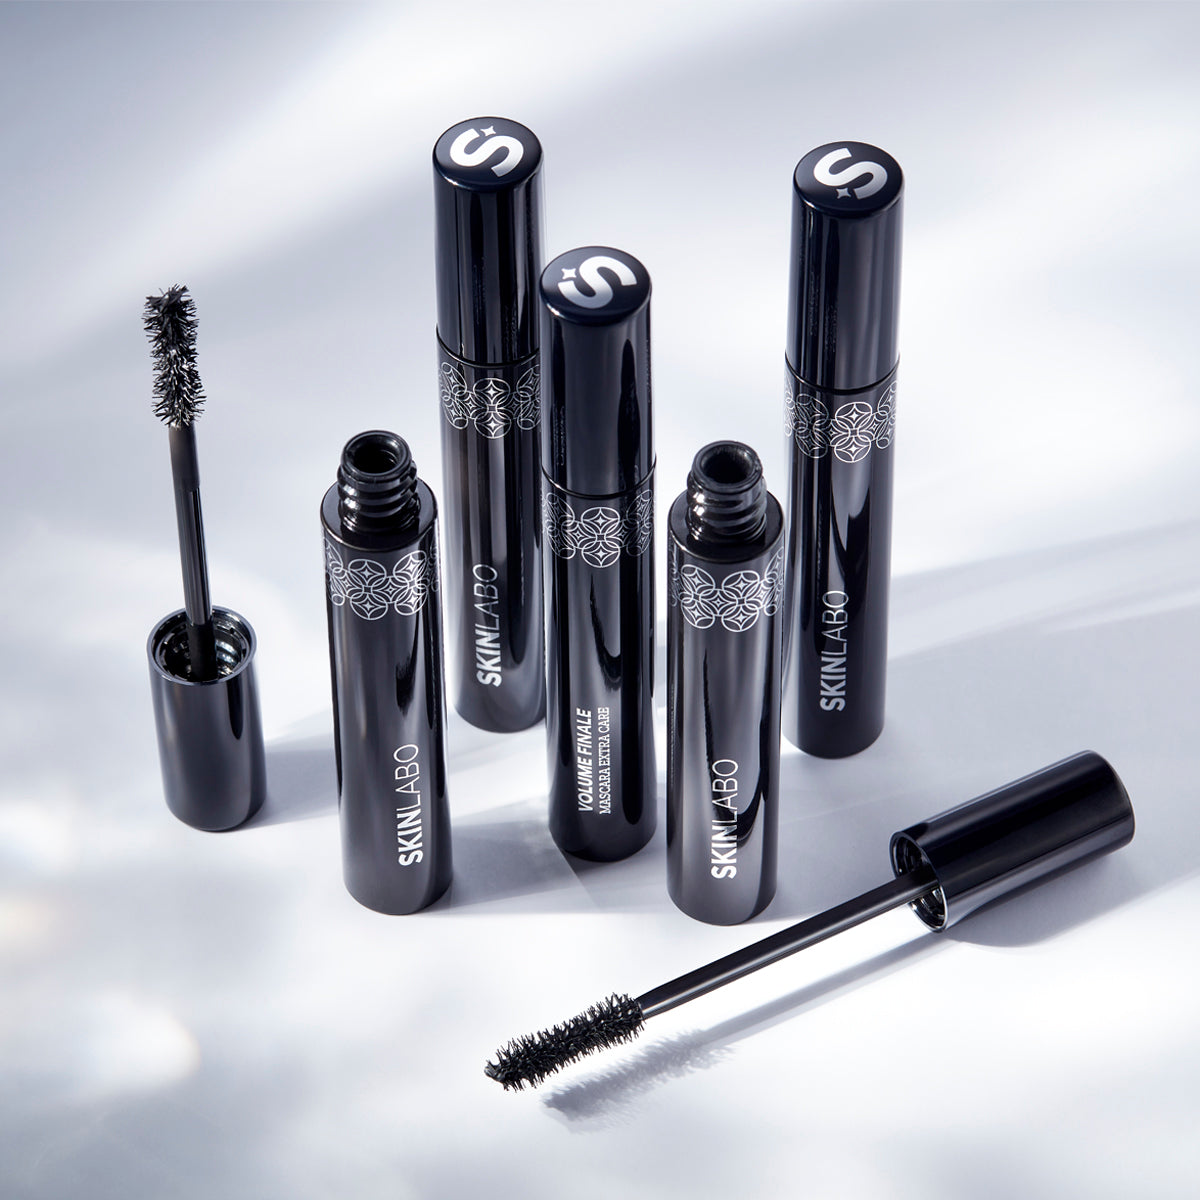 VOLUME FINALE MASCARA EXTRA CARE